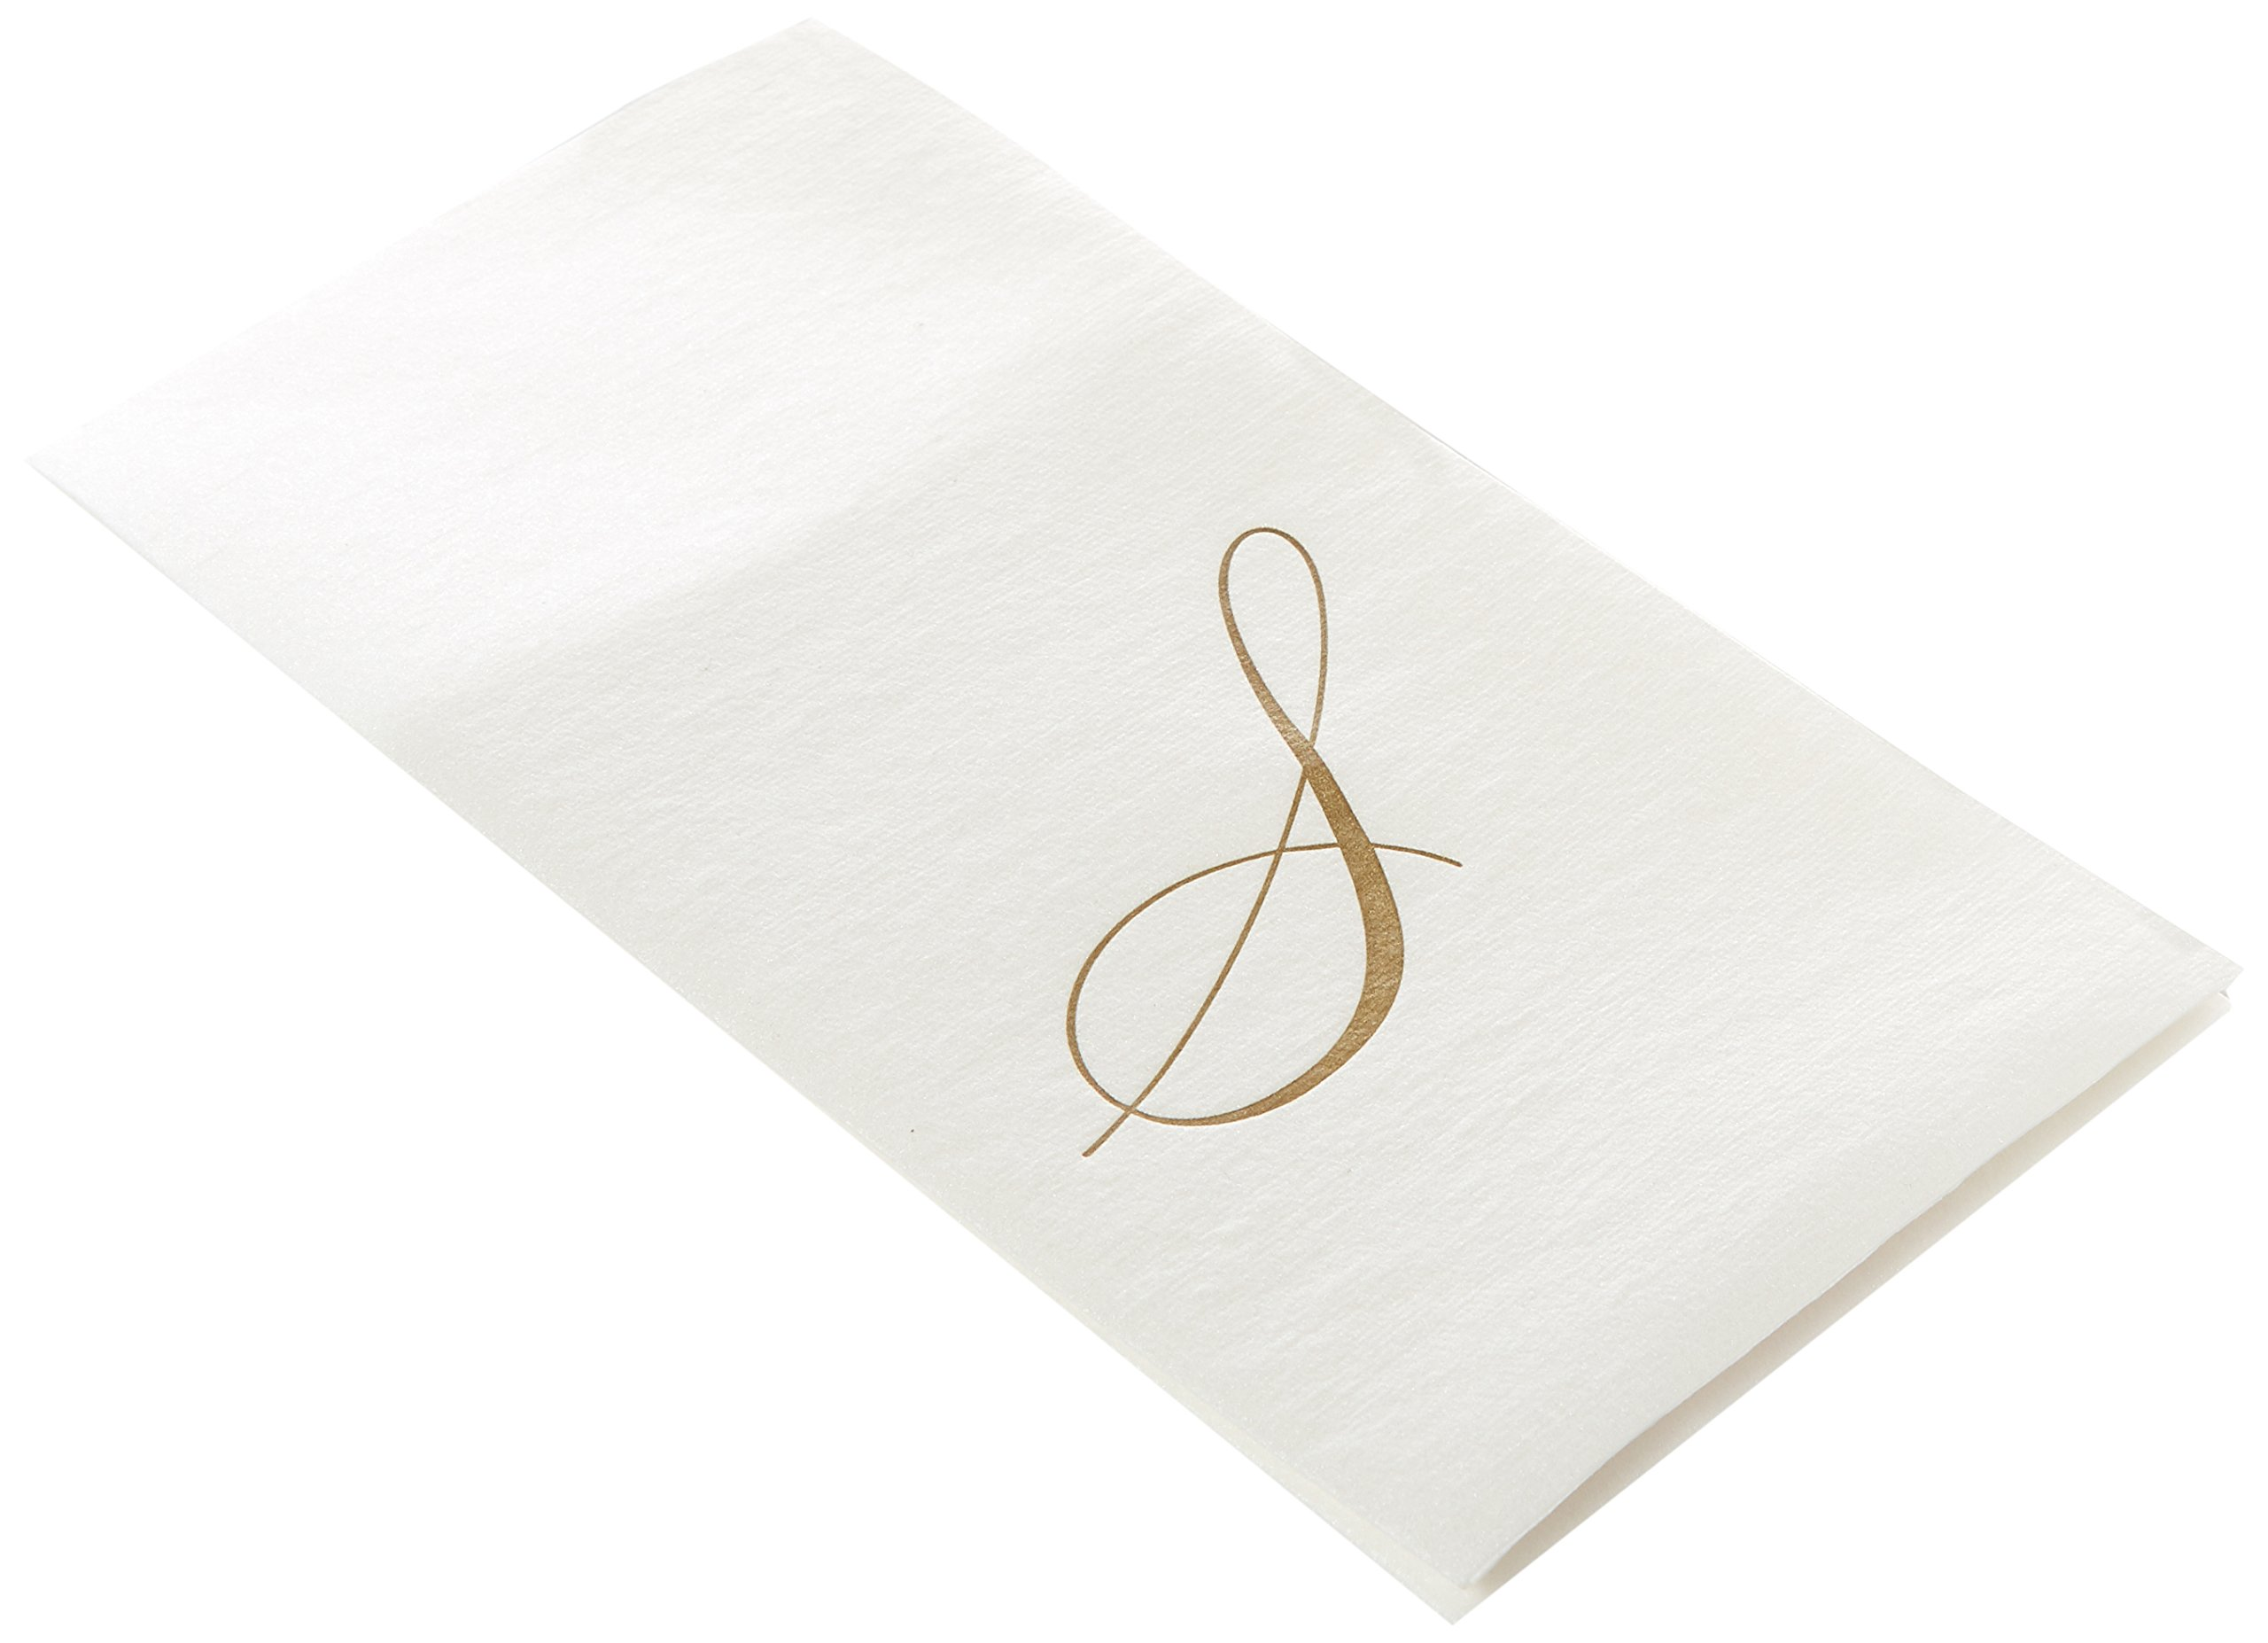 Entertaining with Caspari White Pearl Paper Linen Guest Towels, Monogram Initial S, Pack of 24